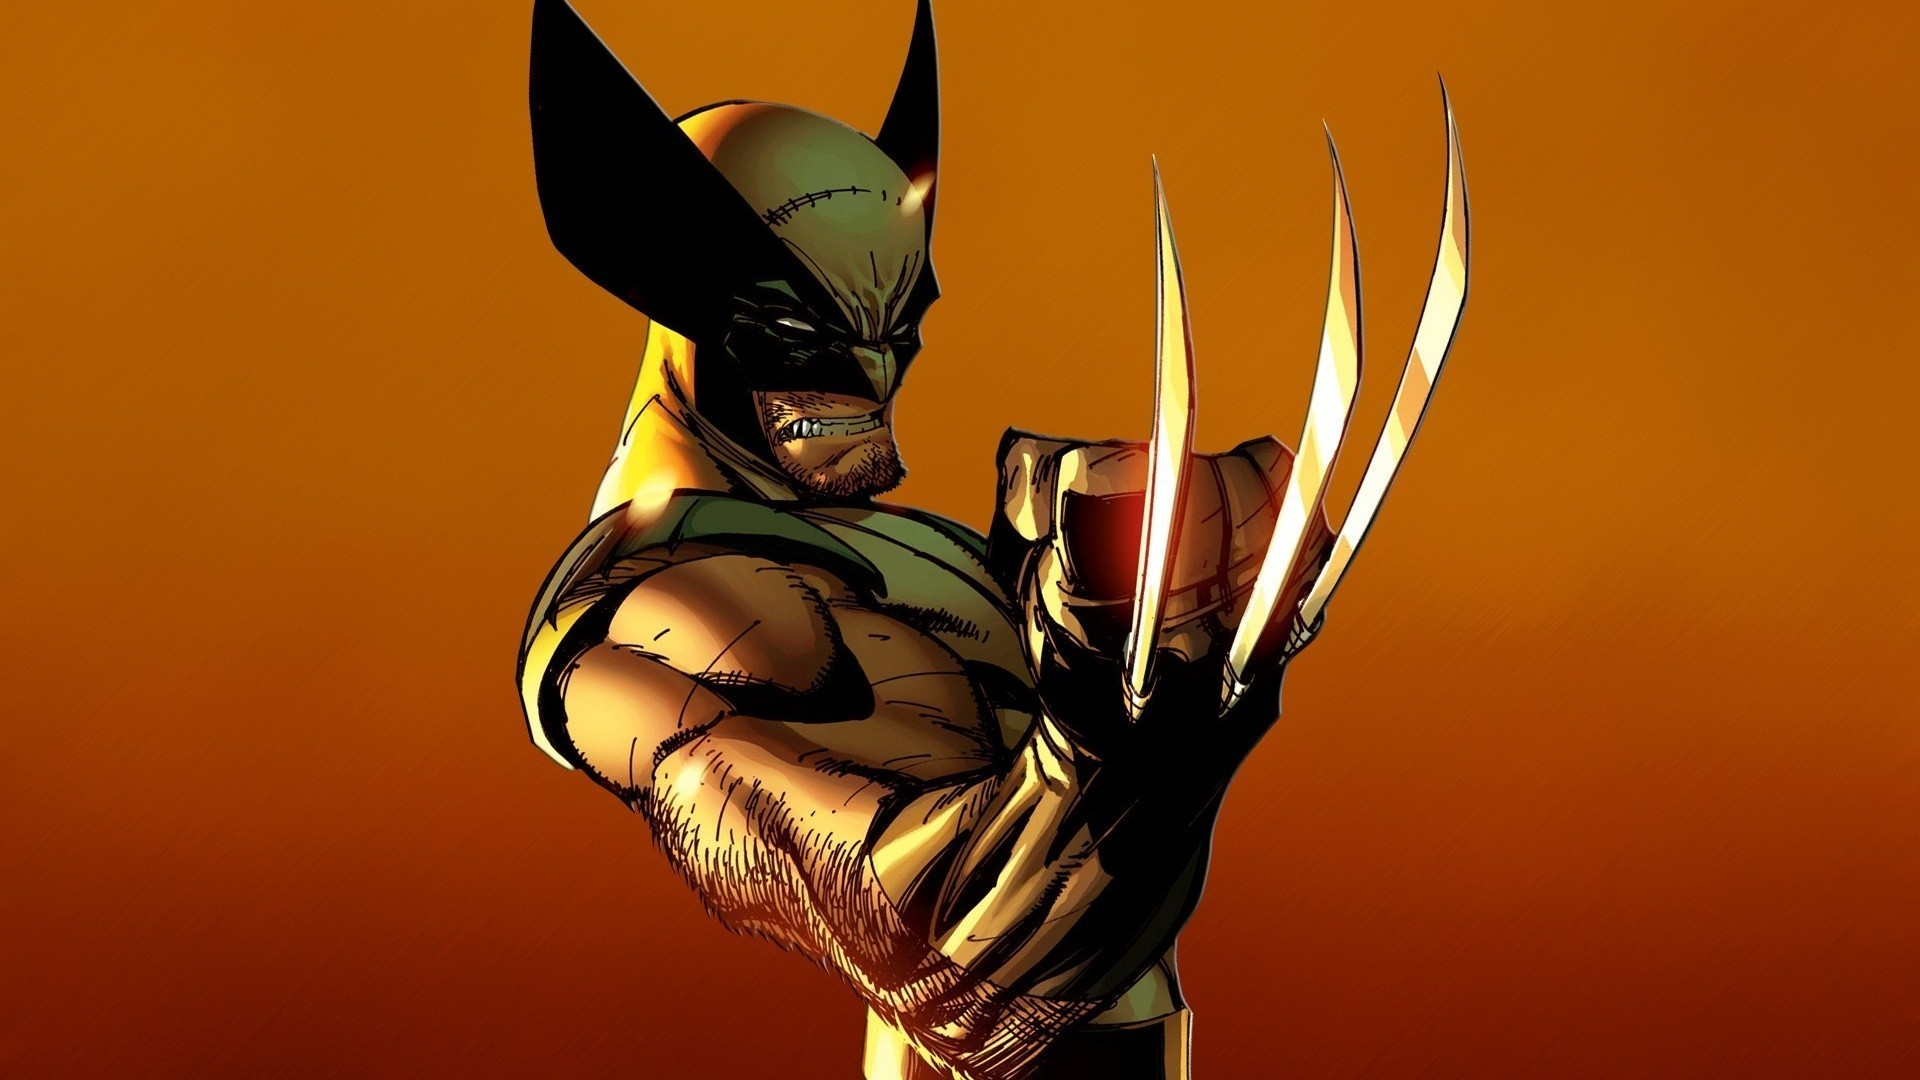 Res: 1920x1080, Wolverine Wallpapers 20 - 1920 X 1080